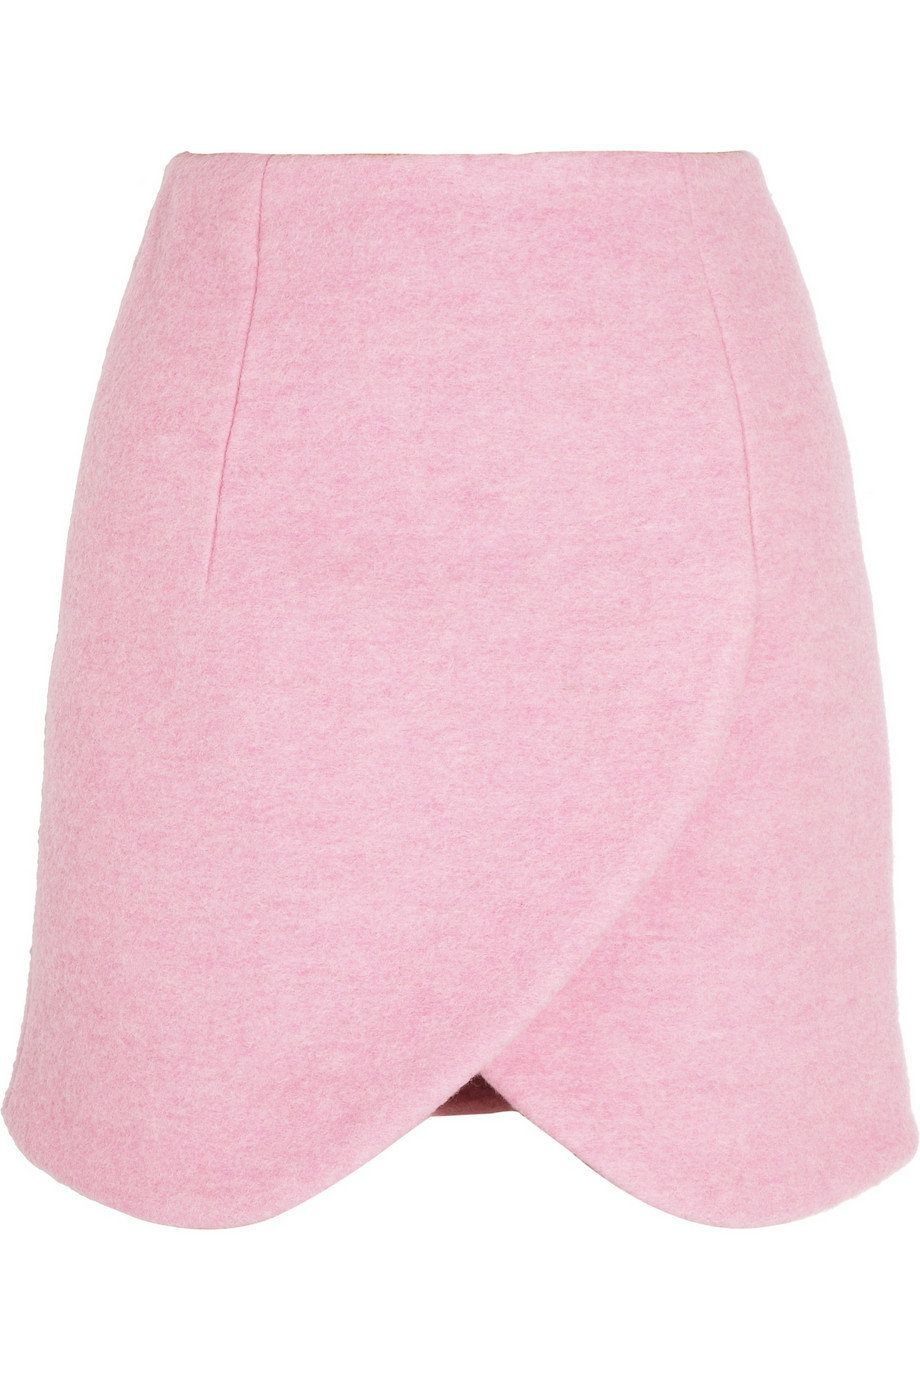 """<a href=""""http://www.net-a-porter.com/product/383162"""" target=""""_hplink"""">Carven skirt, $350</a>  Pink is the color of the season"""